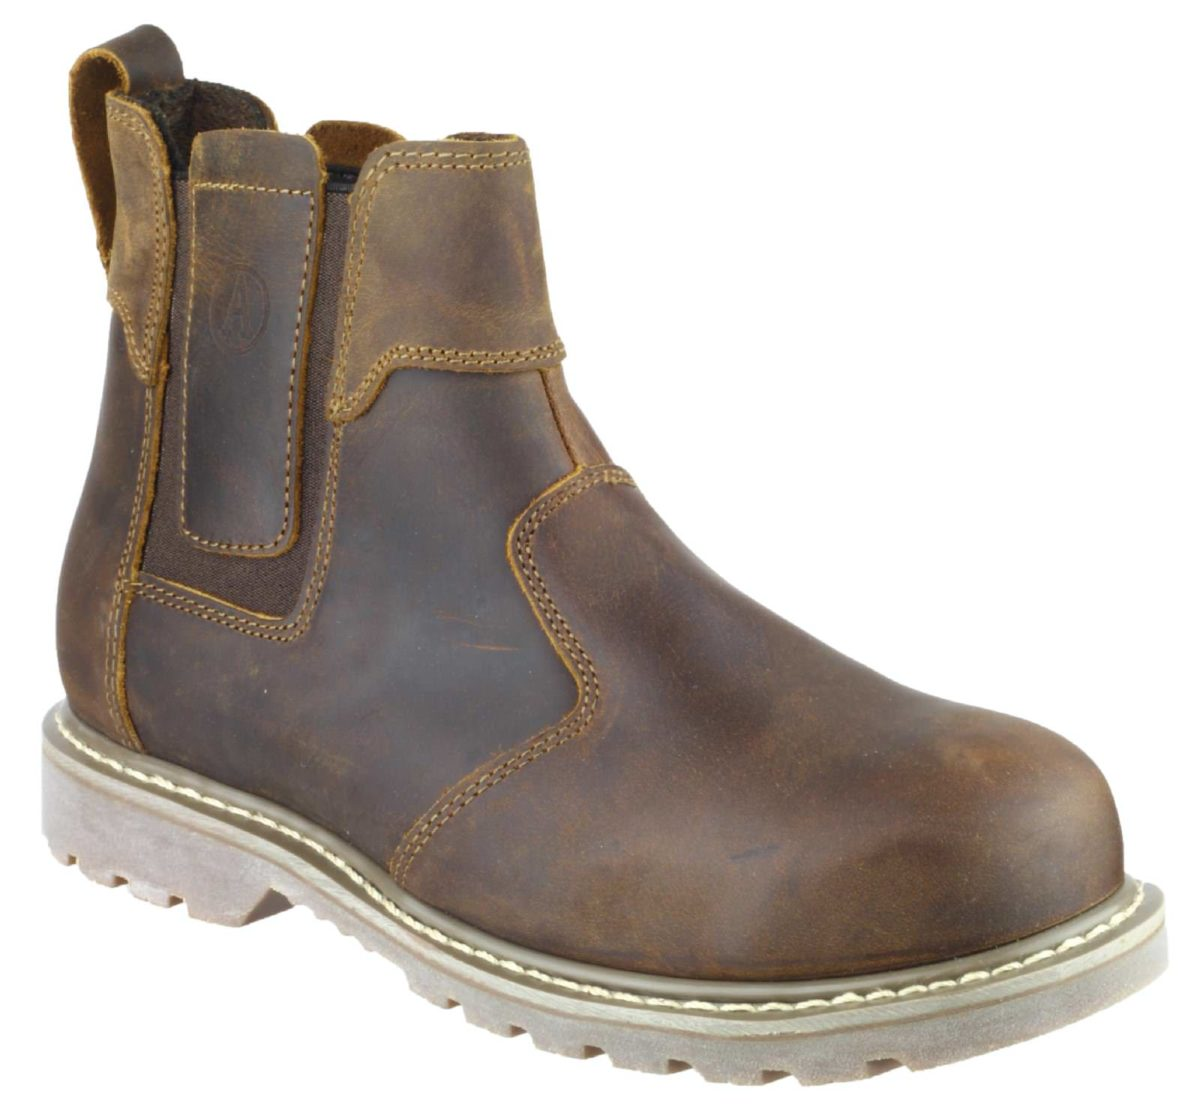 Amblers FS165 Leather Dealer Safety Boot